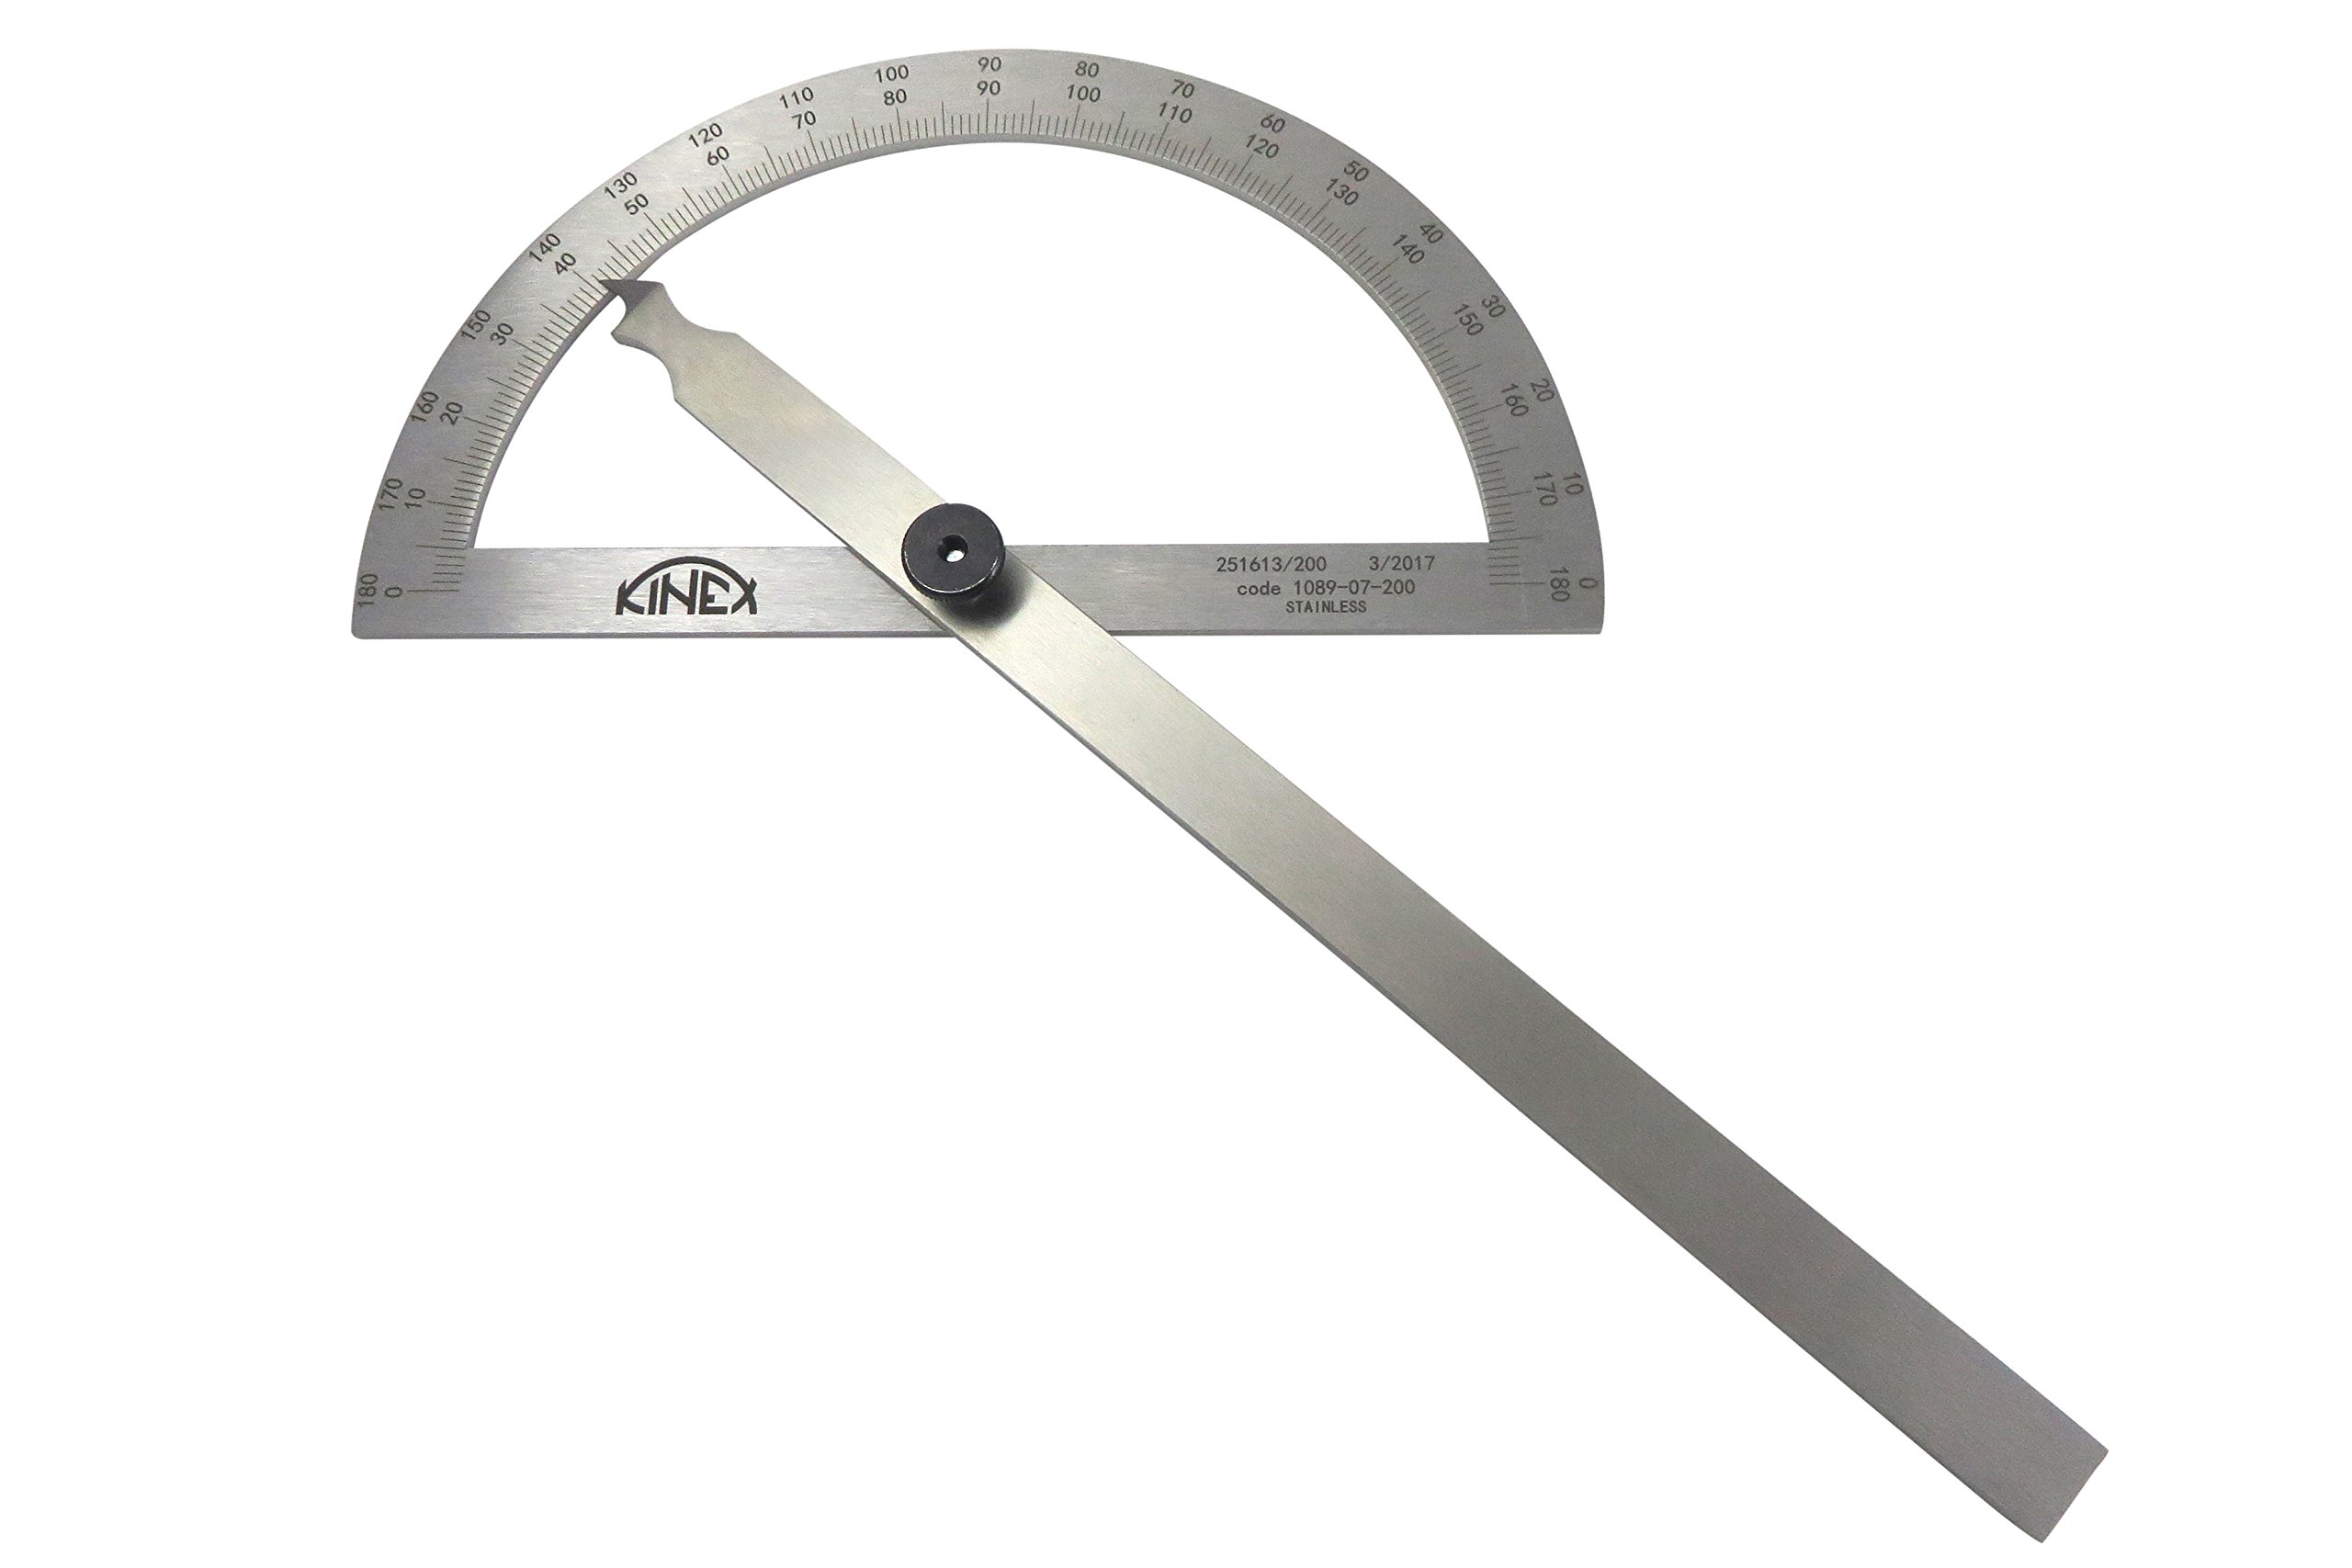 Kinex 1089-07-200 7-3/4'' (200 mm) Stainless Steel Machinist Protractor Angle Finder